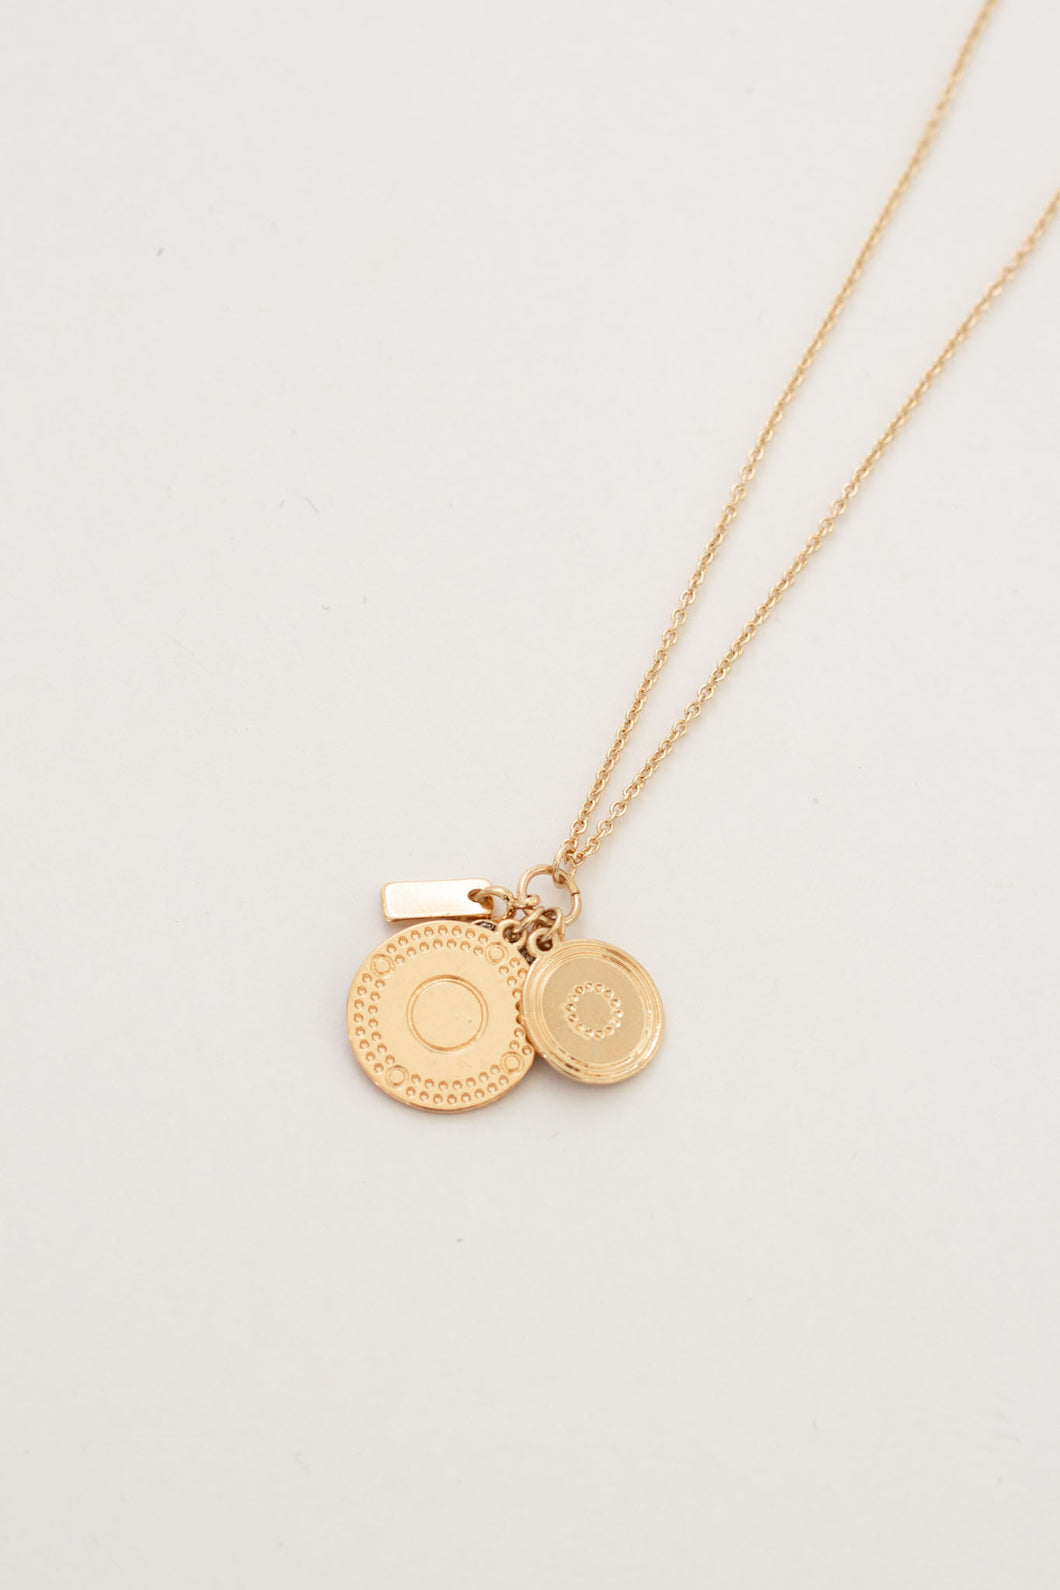 Femme Coin Charms Cluster Necklace - Gold